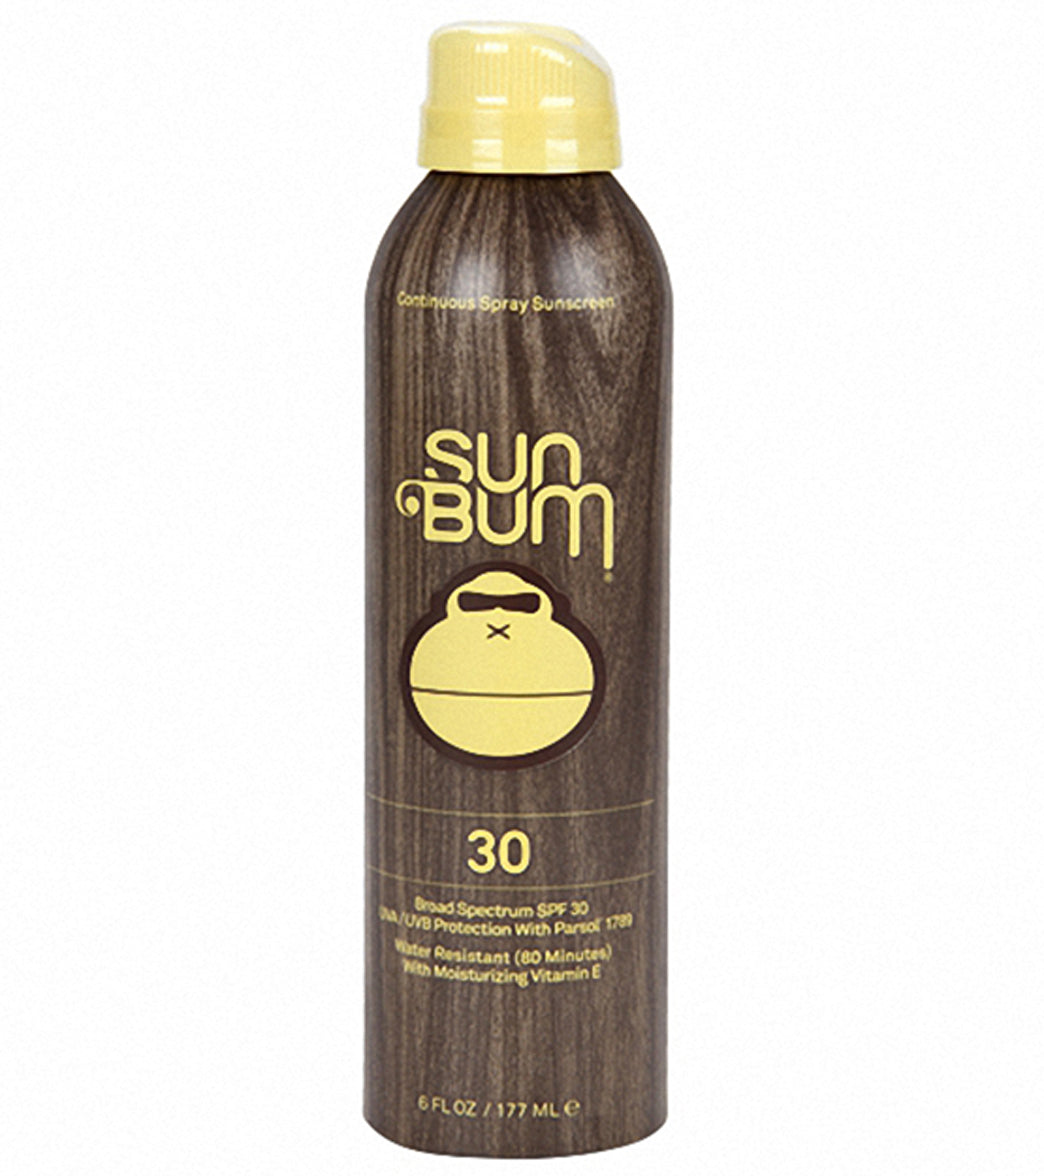 Sun Bum Original SPF 30 Sunscreen Spray - 6oz